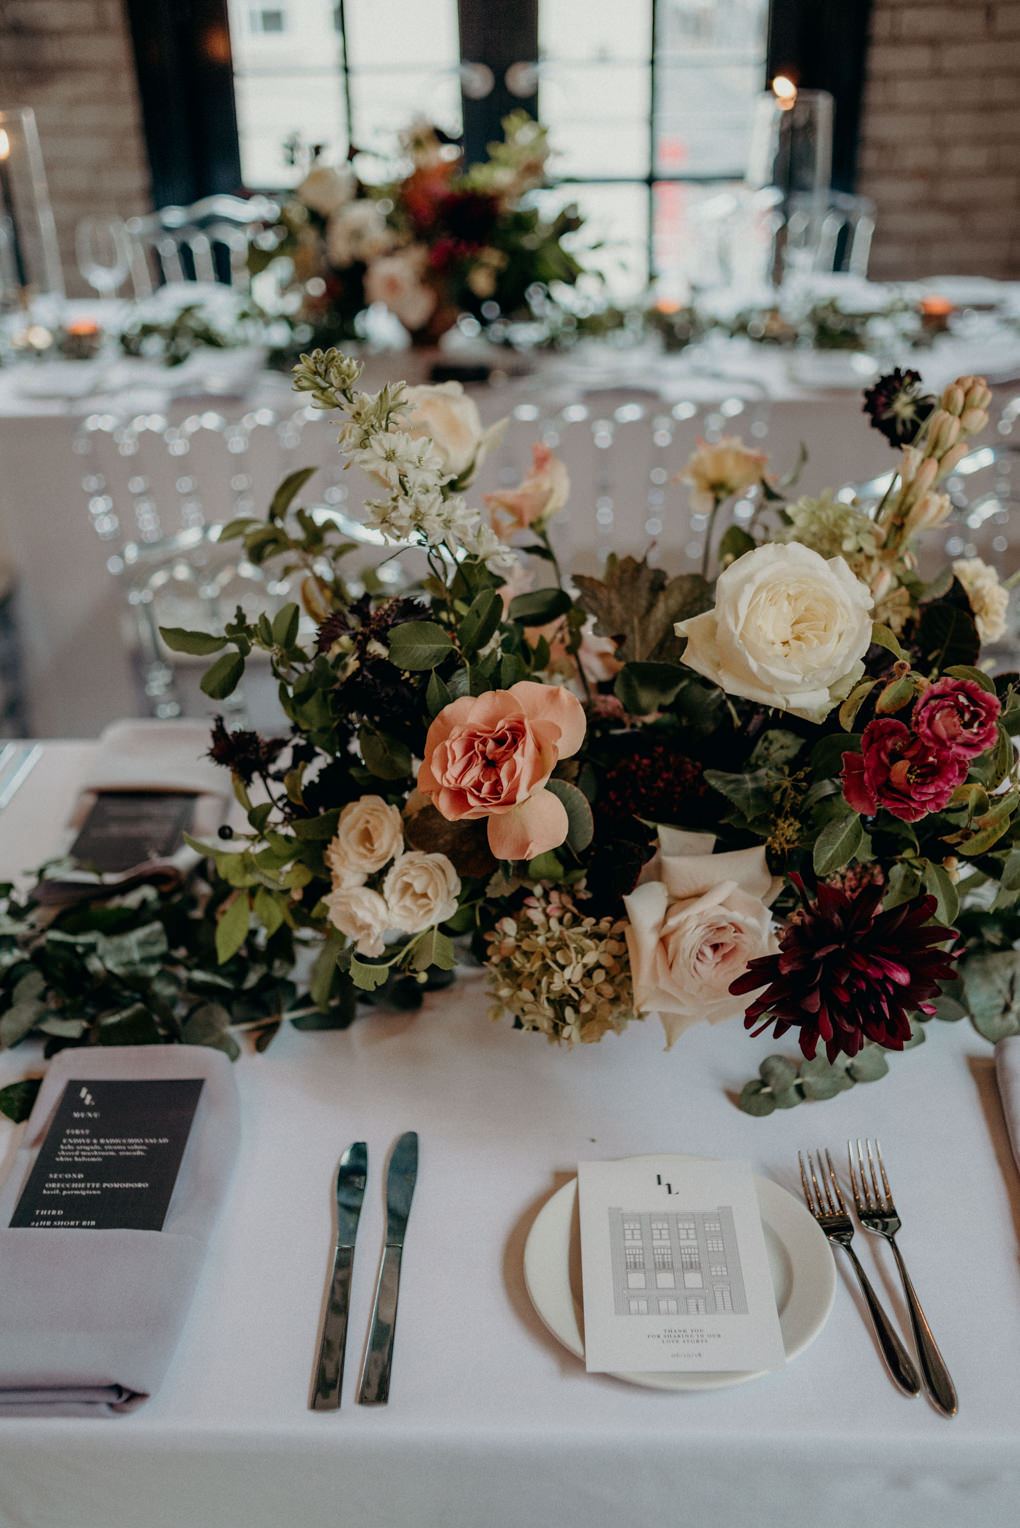 Flower arrangement on table for reception